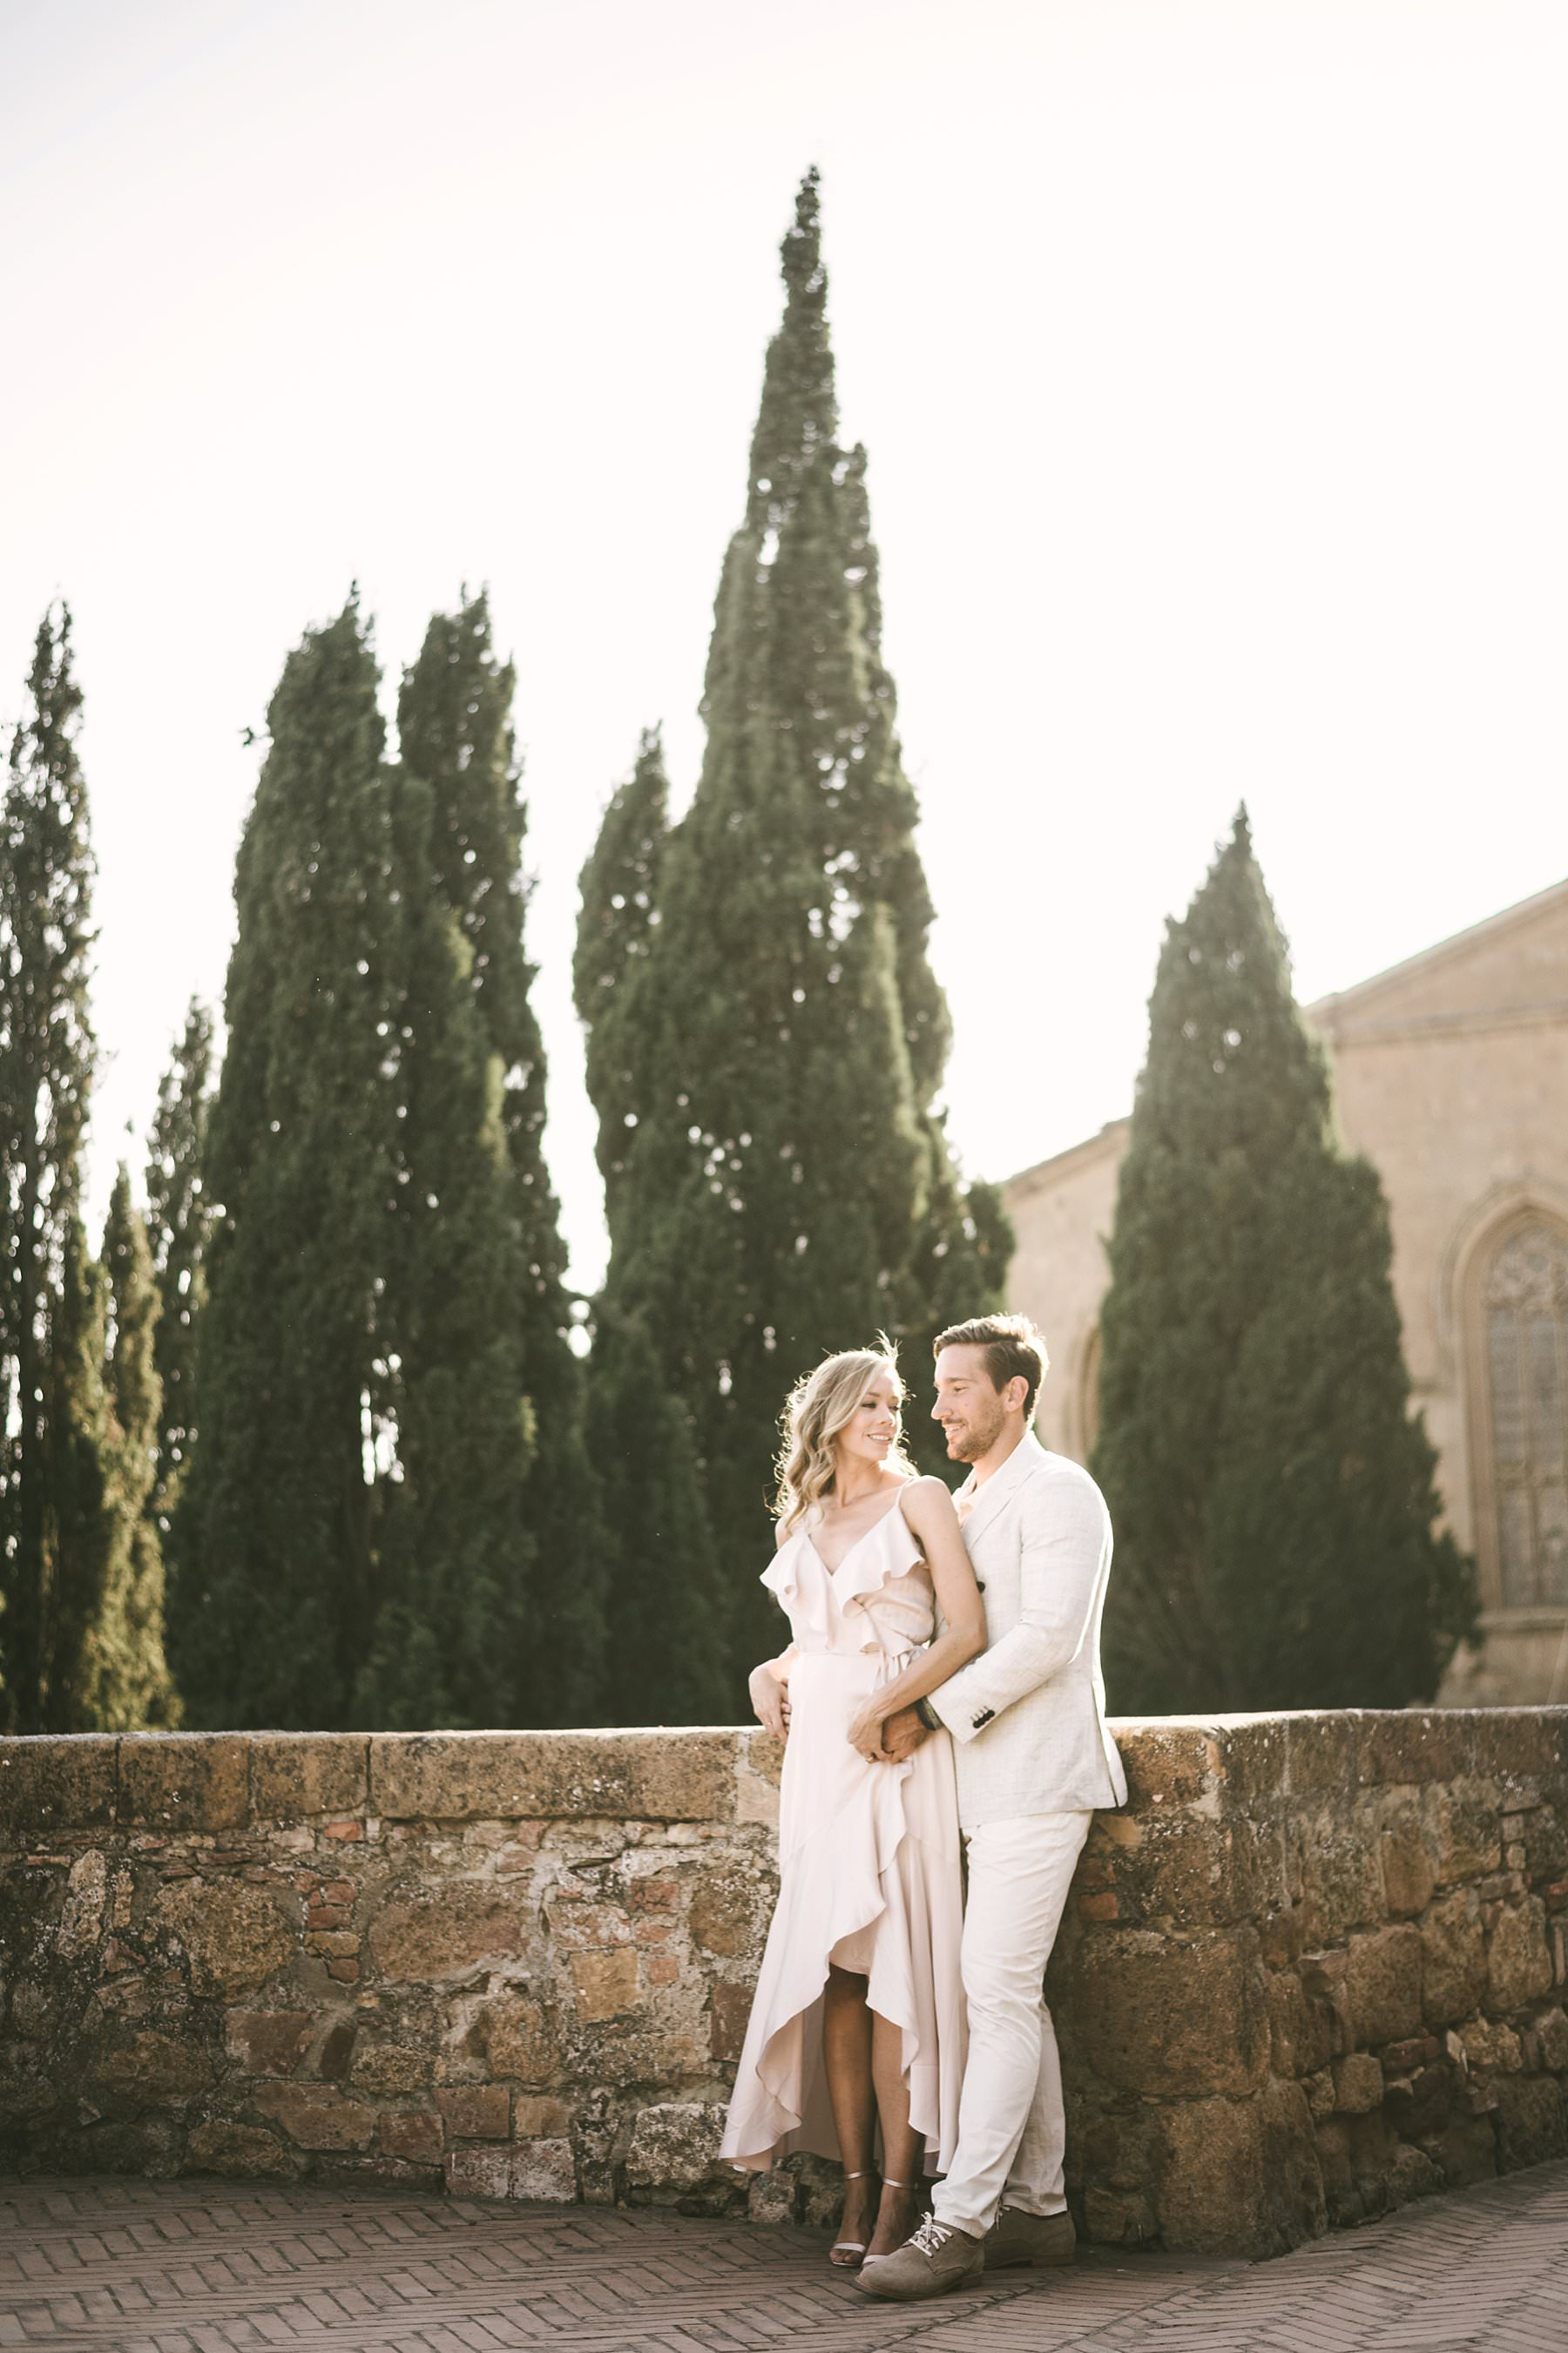 Lovely tuscan typical couple photo with cypress in the background in the town of Pienza